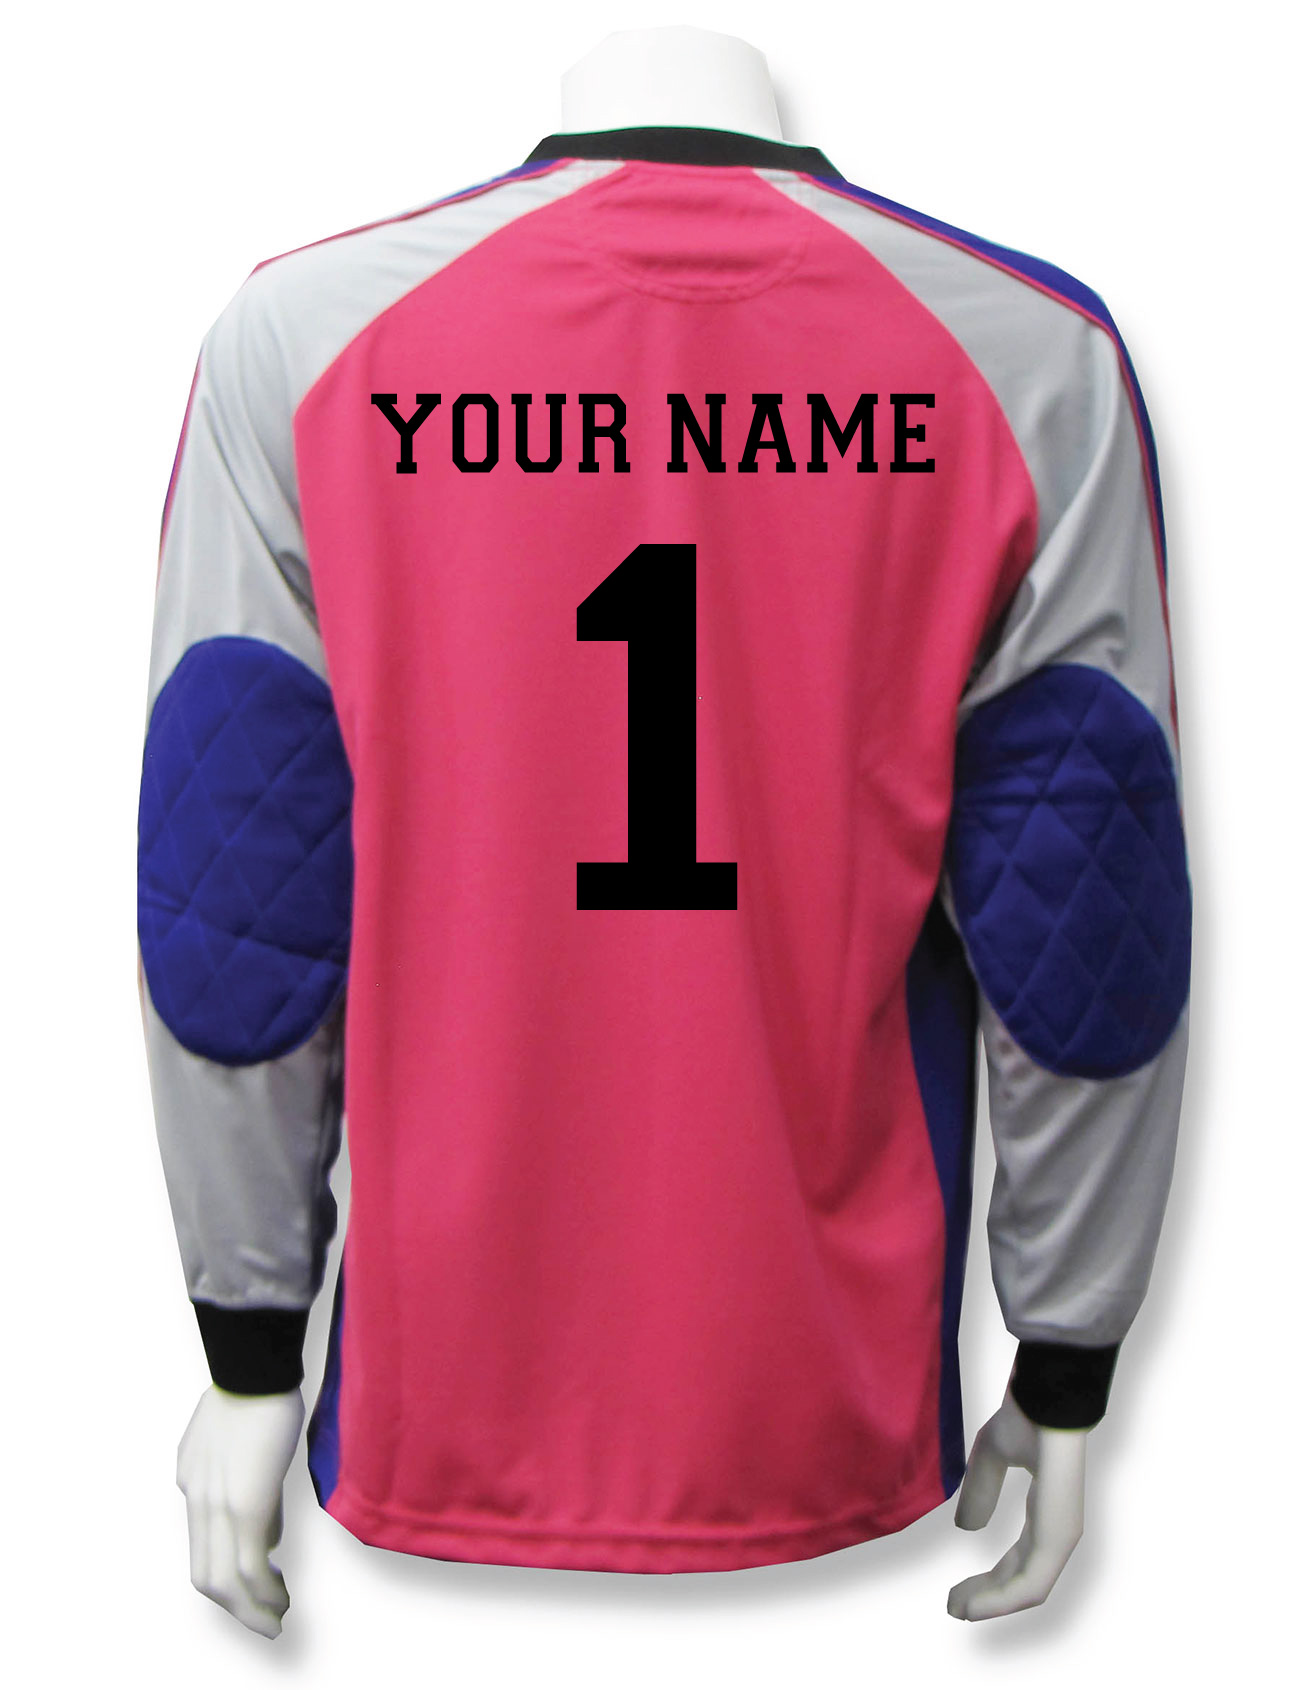 Victory soccer goalie jersey with name and number on back by Code Four Athletics